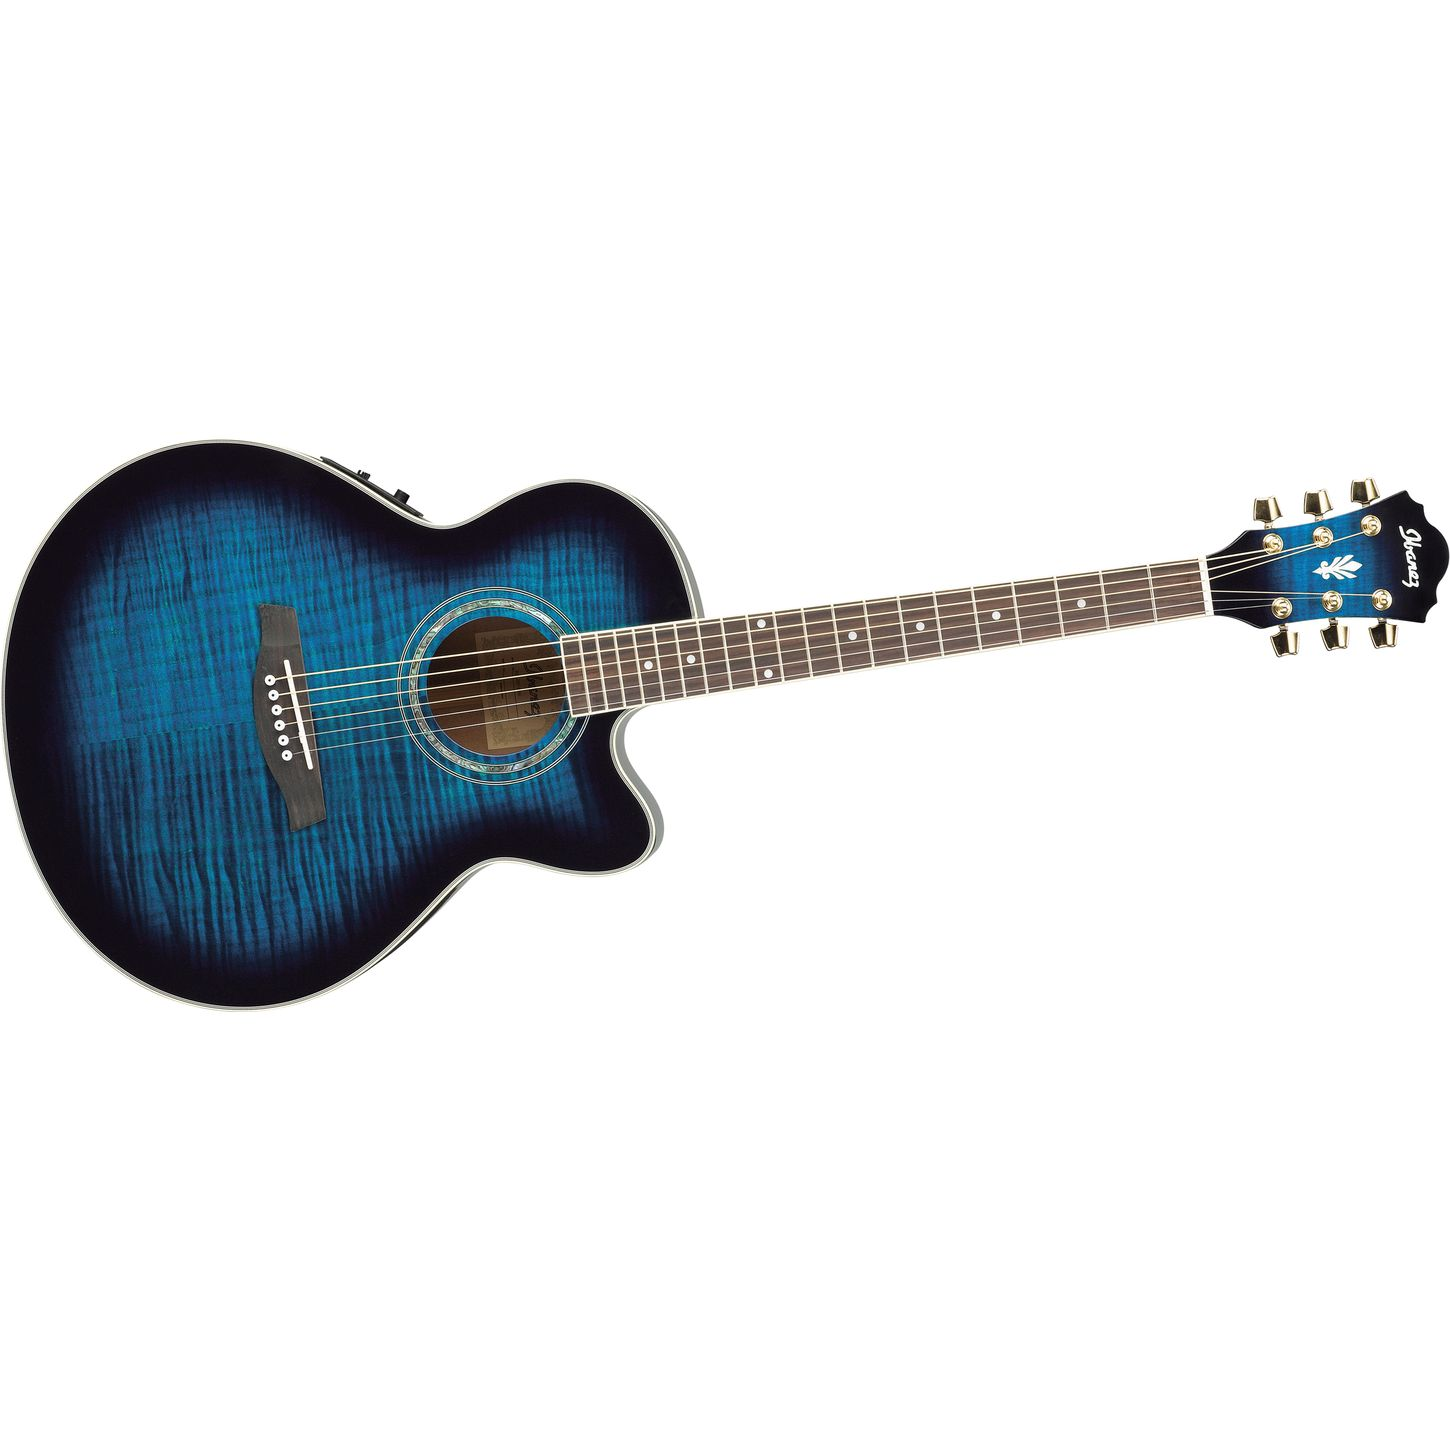 ibanez ael20ent acoustic electric guitar musician 39 s friend. Black Bedroom Furniture Sets. Home Design Ideas